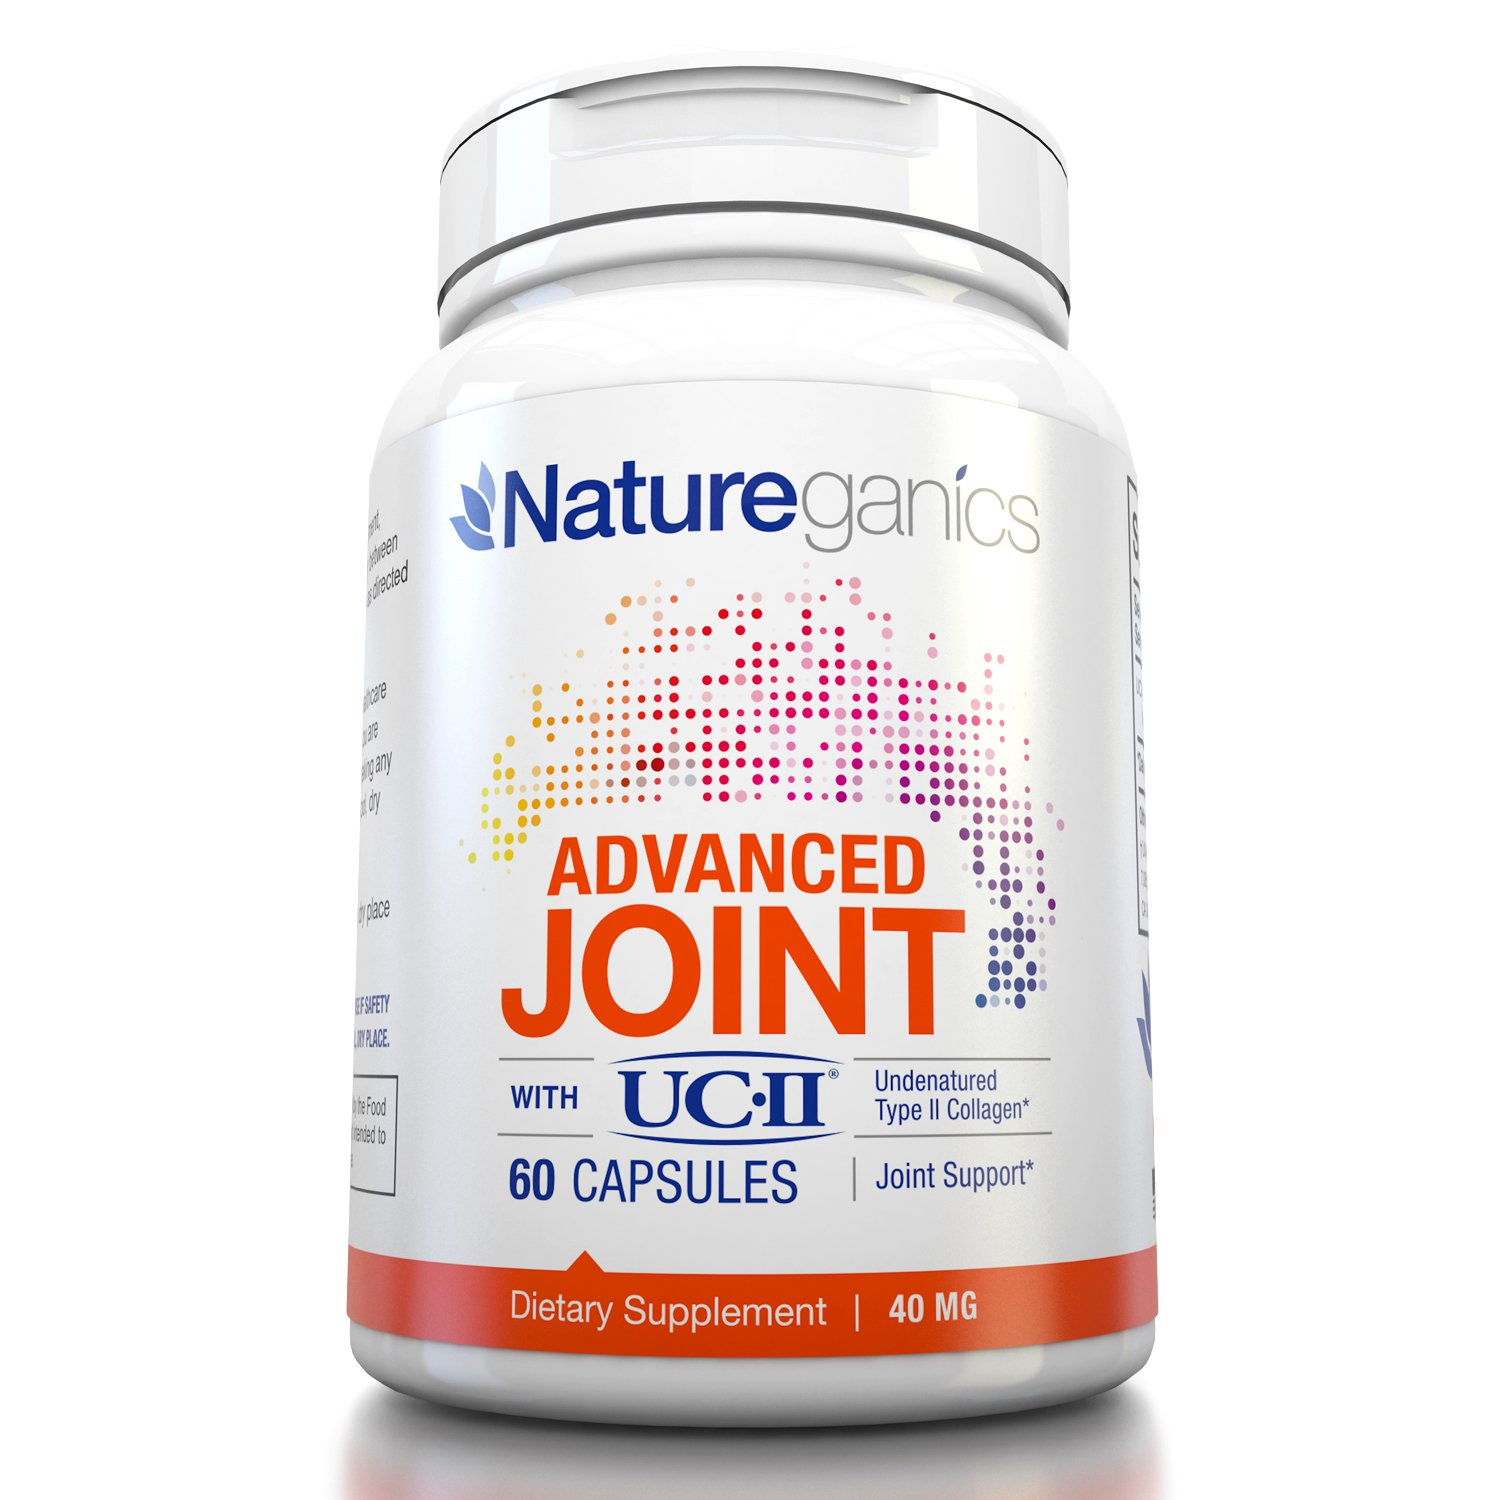 Natureganics Pure Uc Ii Collagen 40mg Joint Formula Flex Formulated To Promote Healthy Joints Extreme Health Personal Care